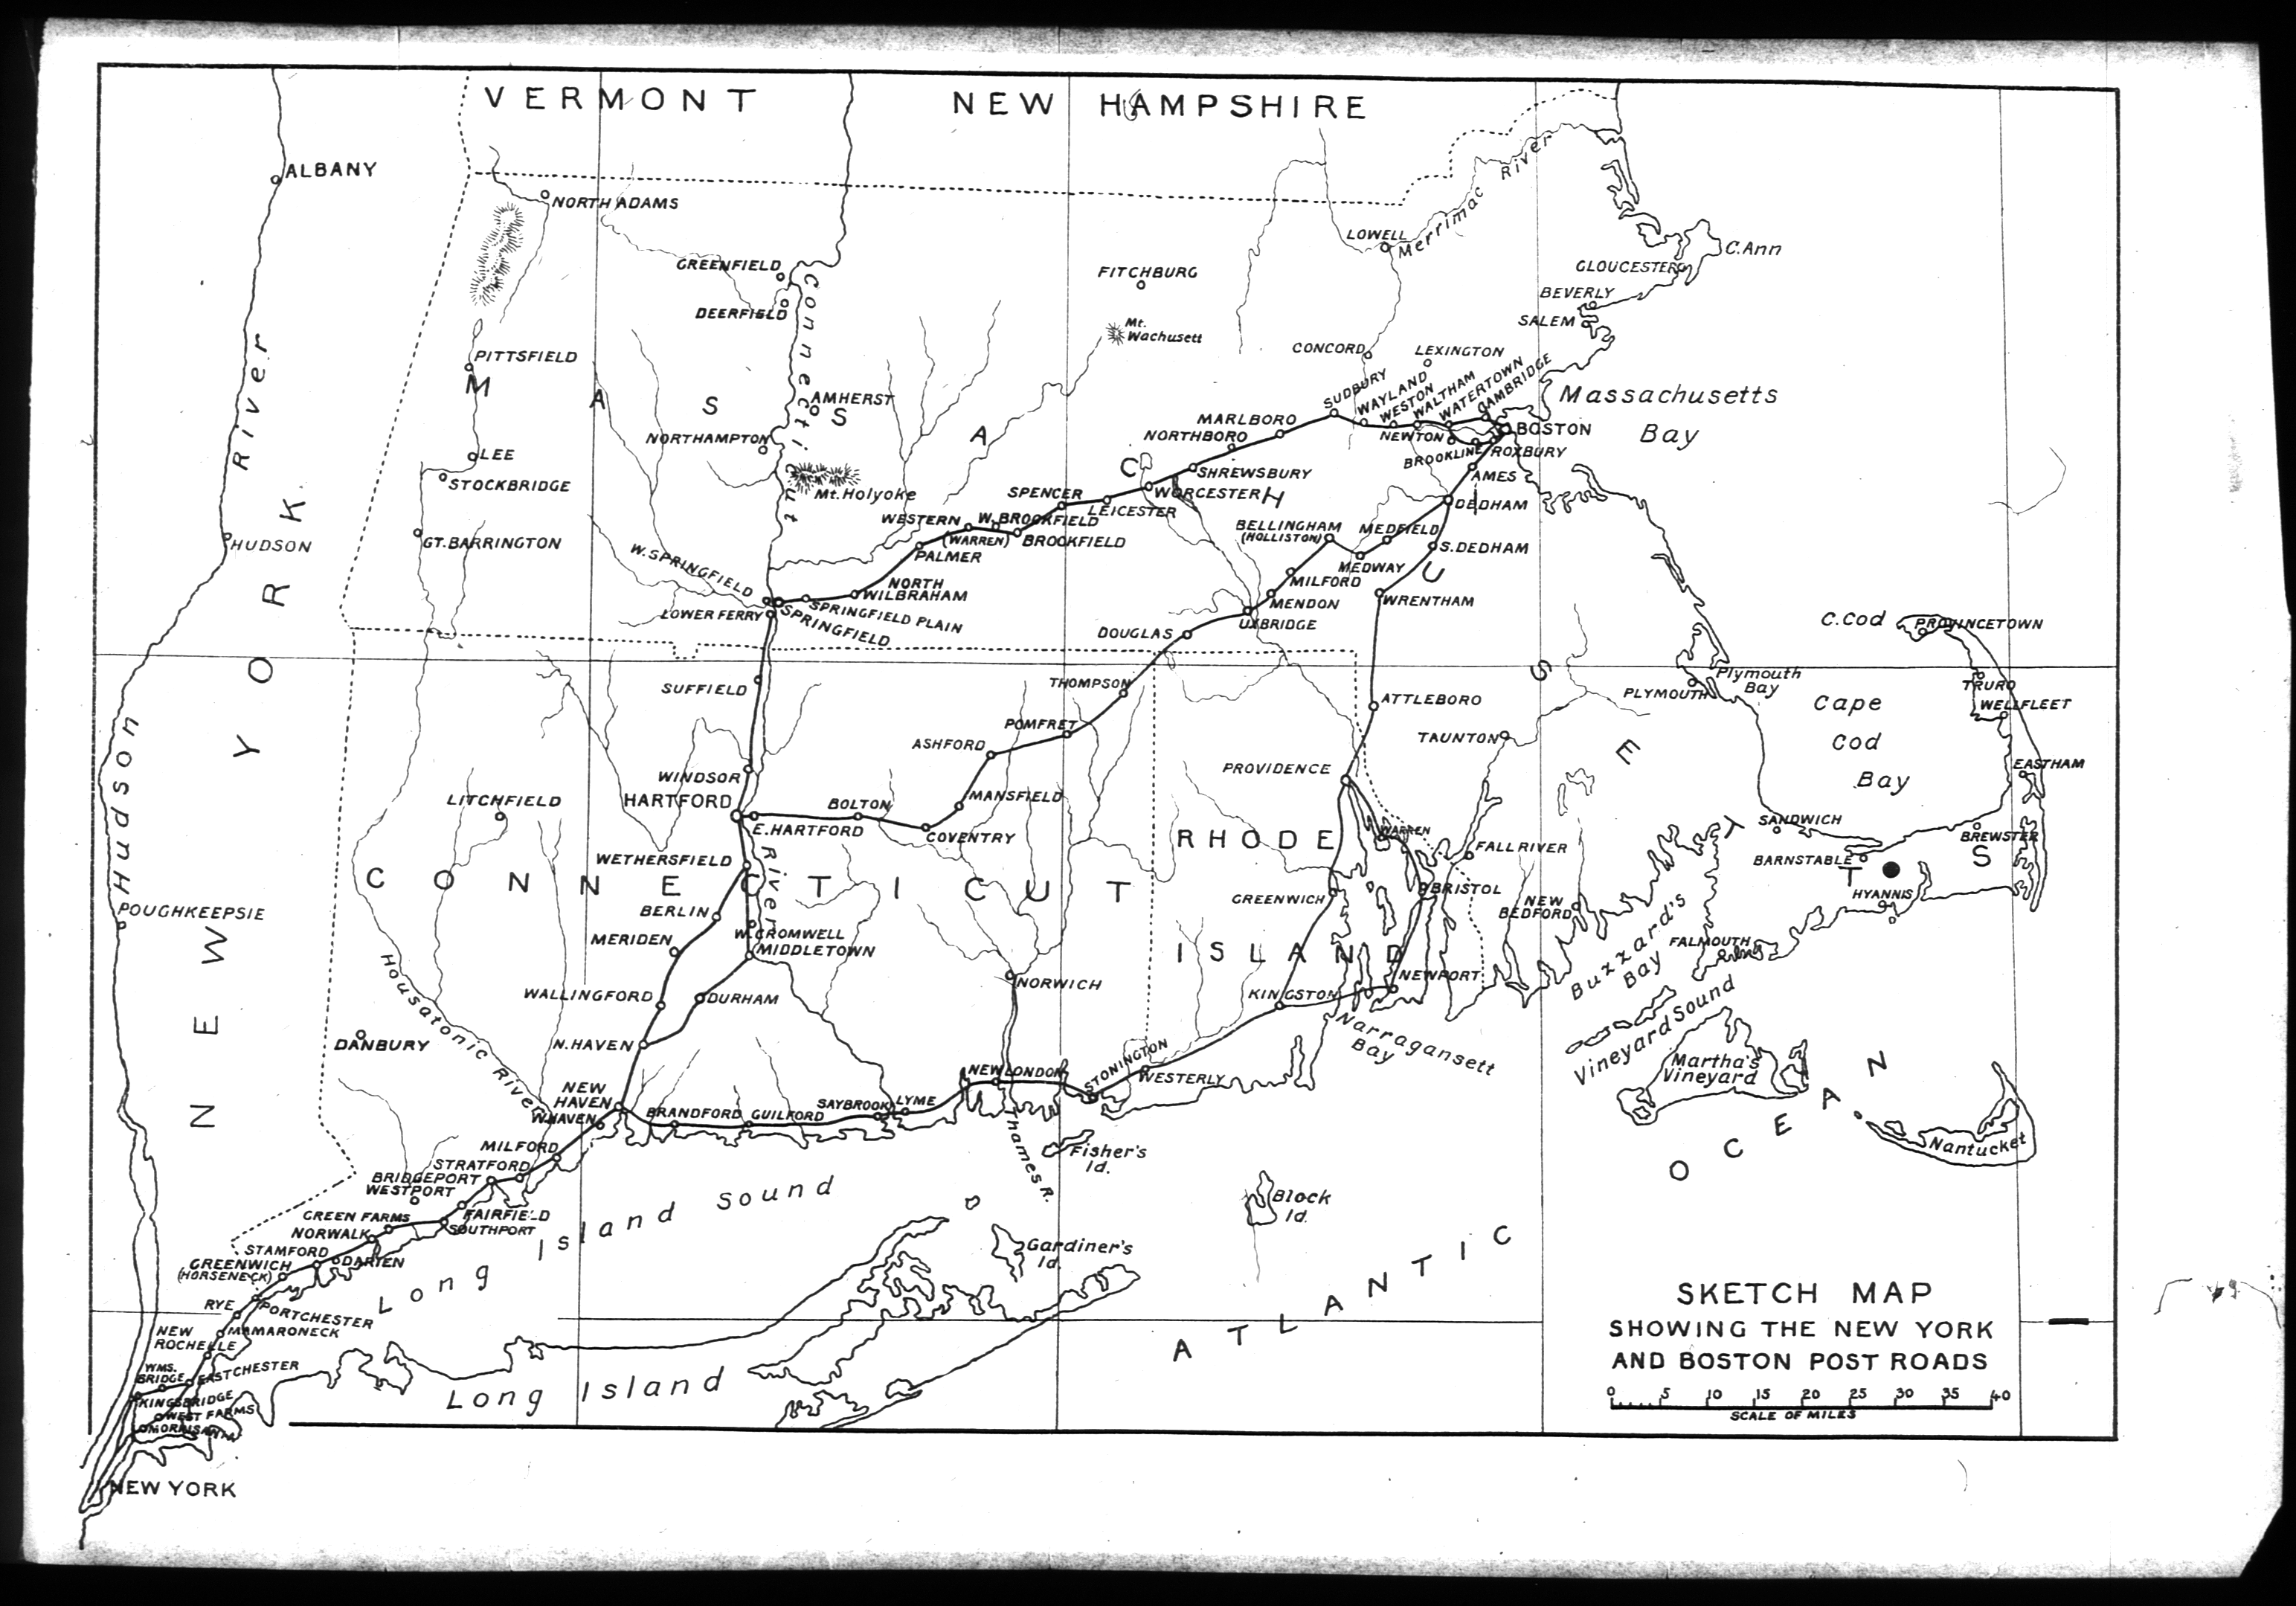 early american map of postal road between boston and new york city